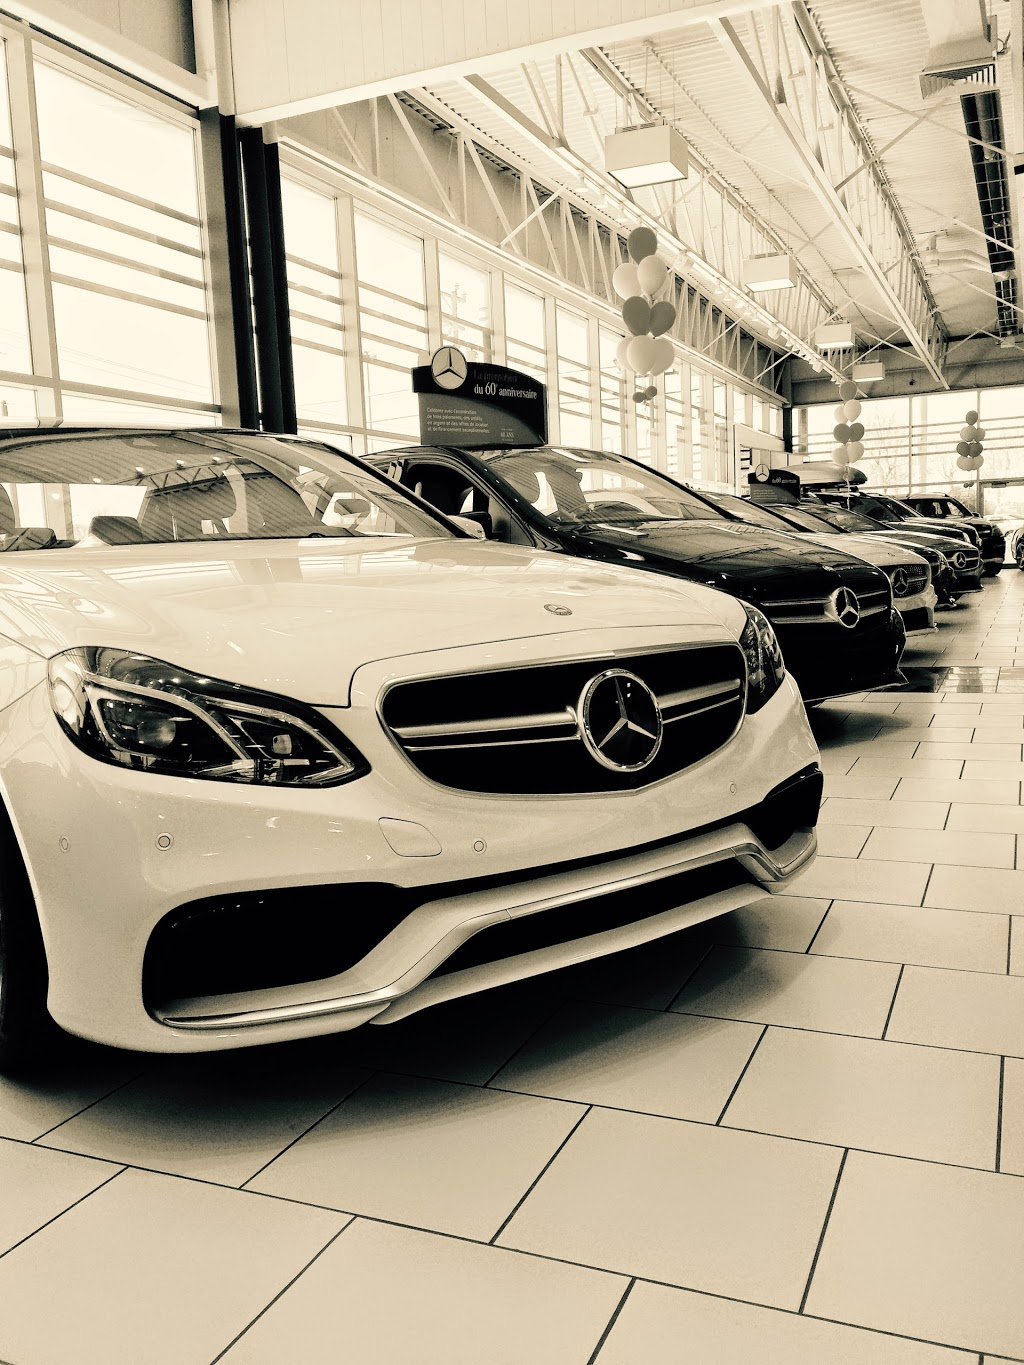 Mercedes-Benz of Quebec | car dealer | 1350 Rue Bouvier, Québec, QC G2K 1N8, Canada | 4186286336 OR +1 418-628-6336